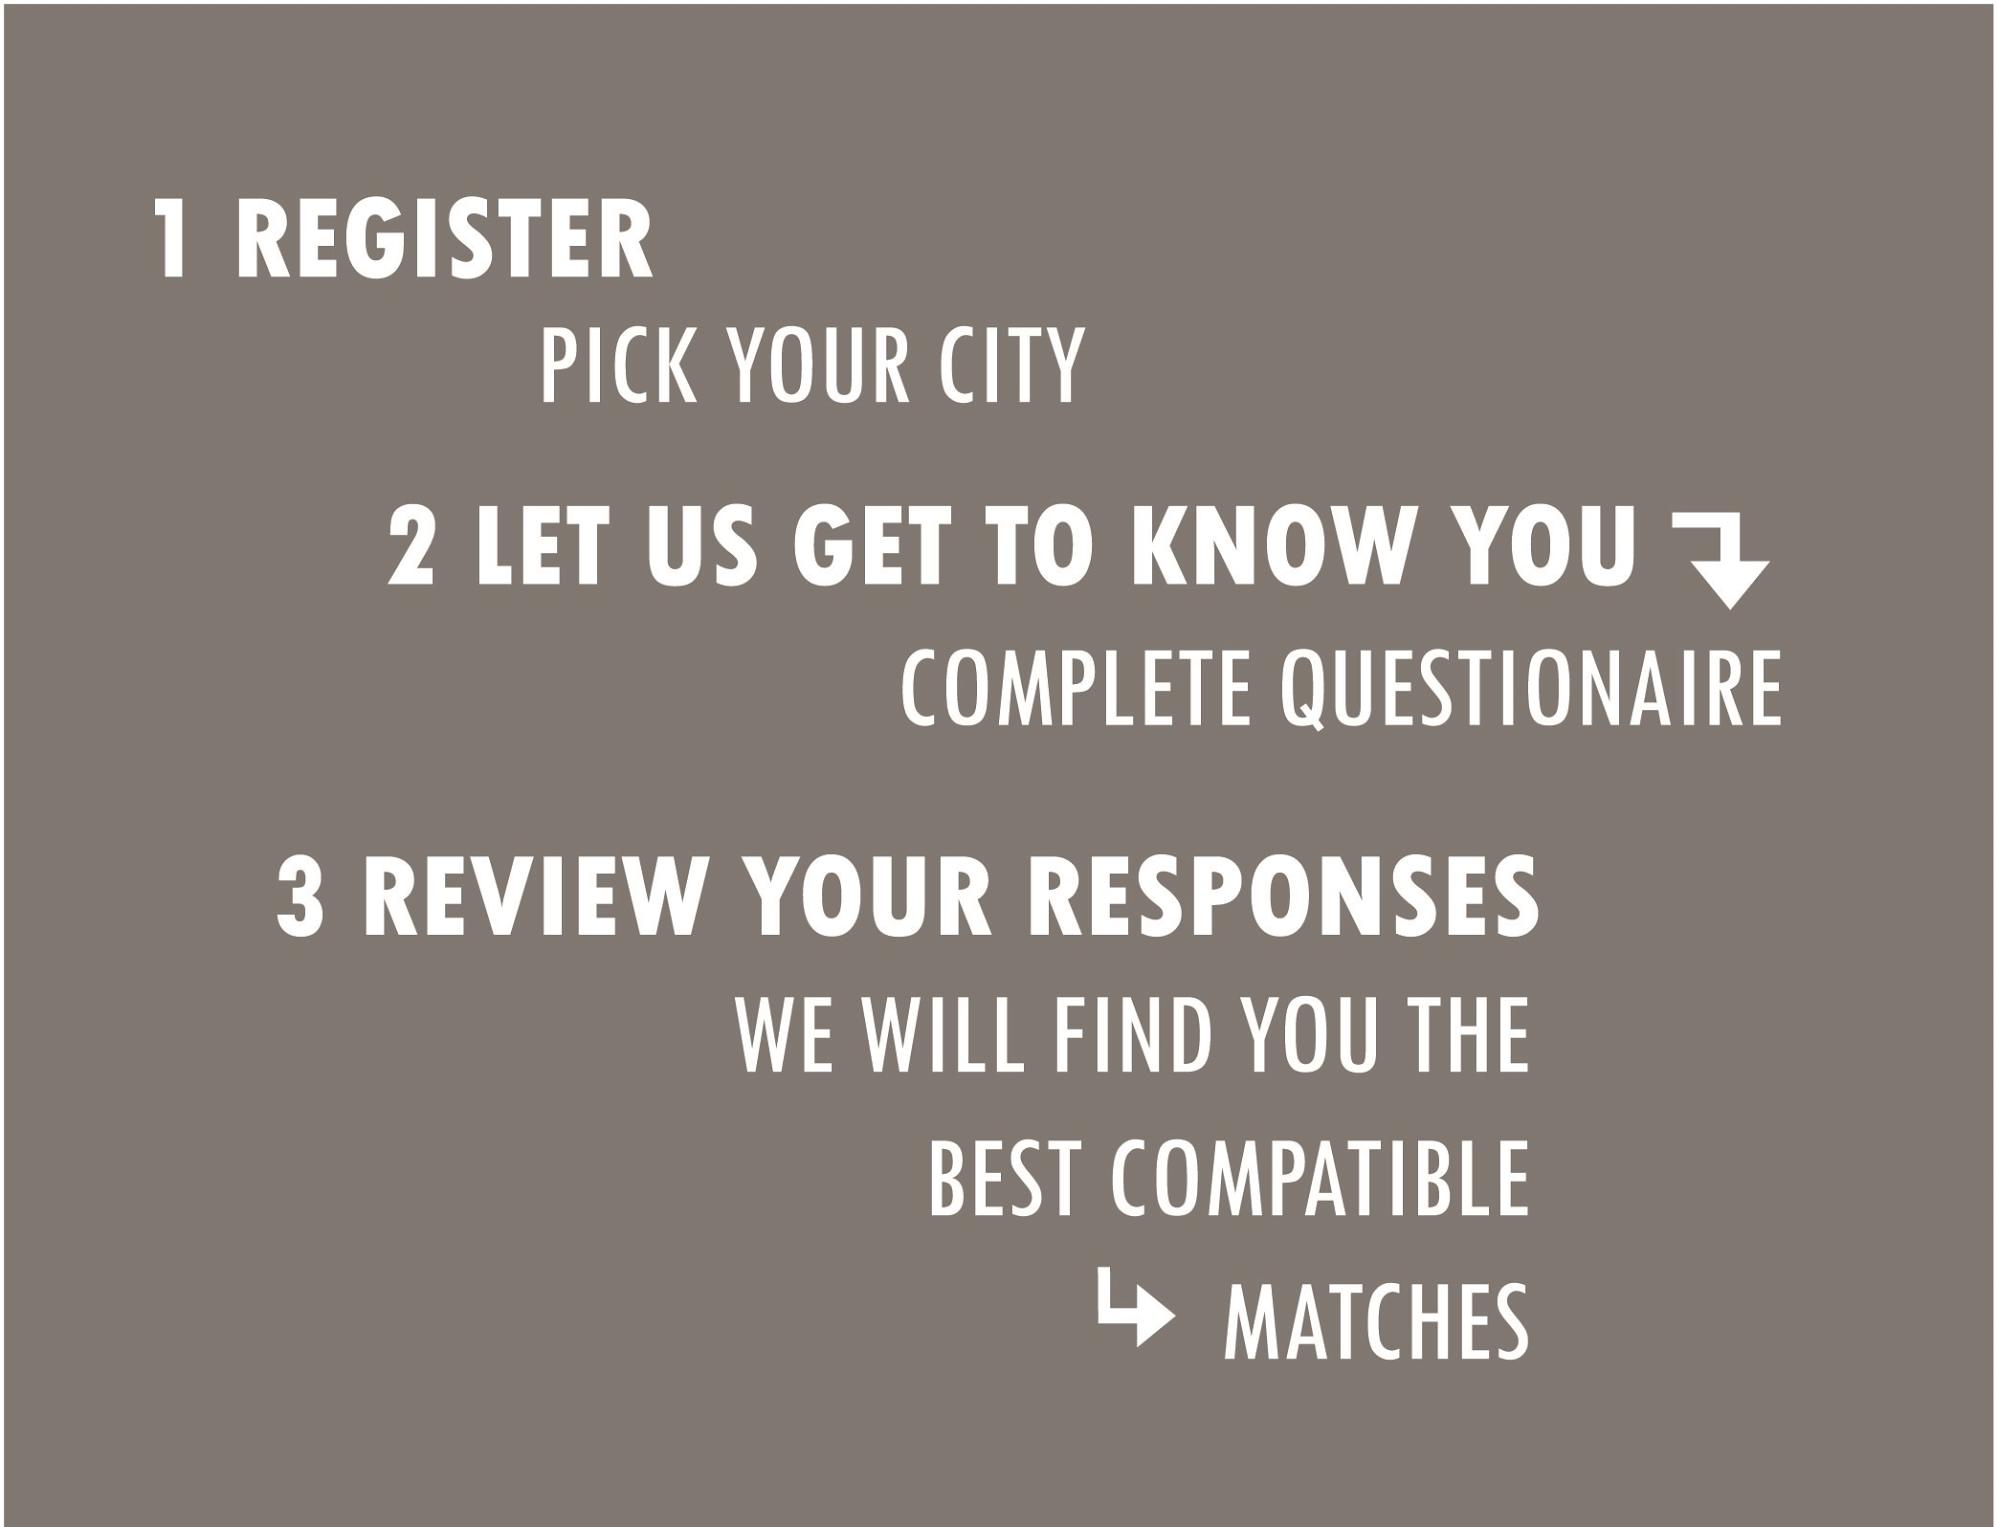 #1 SIGN UP WITH EMAIL ADDRESS            #2 LET US GET TO KNOW YOU ⥂                   COMPLETE QUESTIONNAIRE        #3 SCHEDULE PHONE CALL⥃              CHAT WITH YOUR MATCH GURU              TO REVIEW PARTICULARS    ❛OH- ALL FREE OF COURSE❜